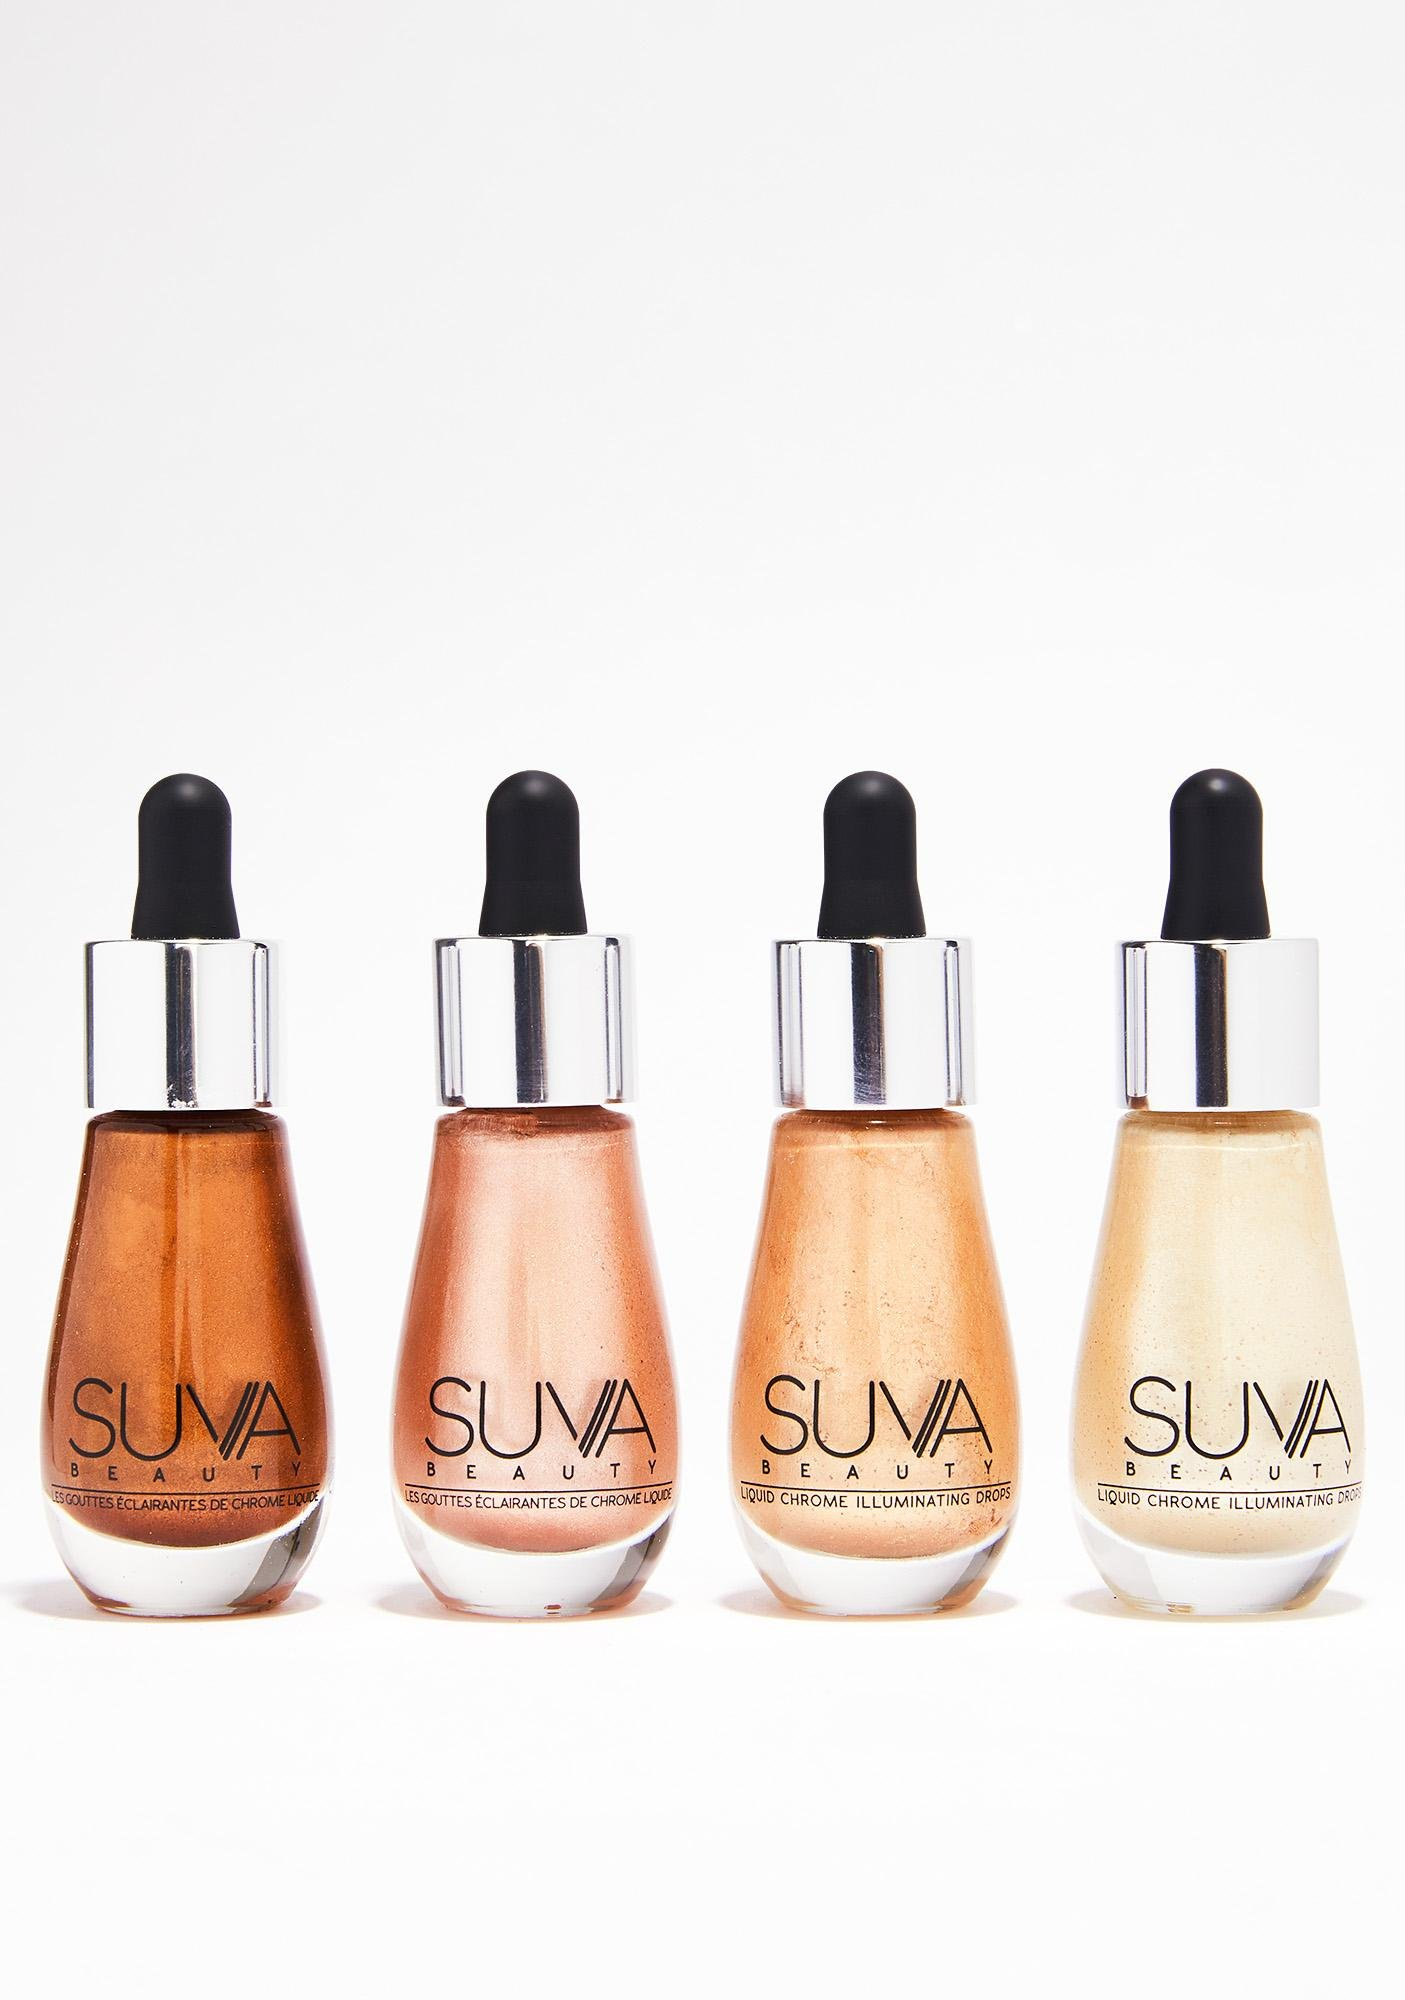 SUVA Beauty Trust Fund Liquid Chrome